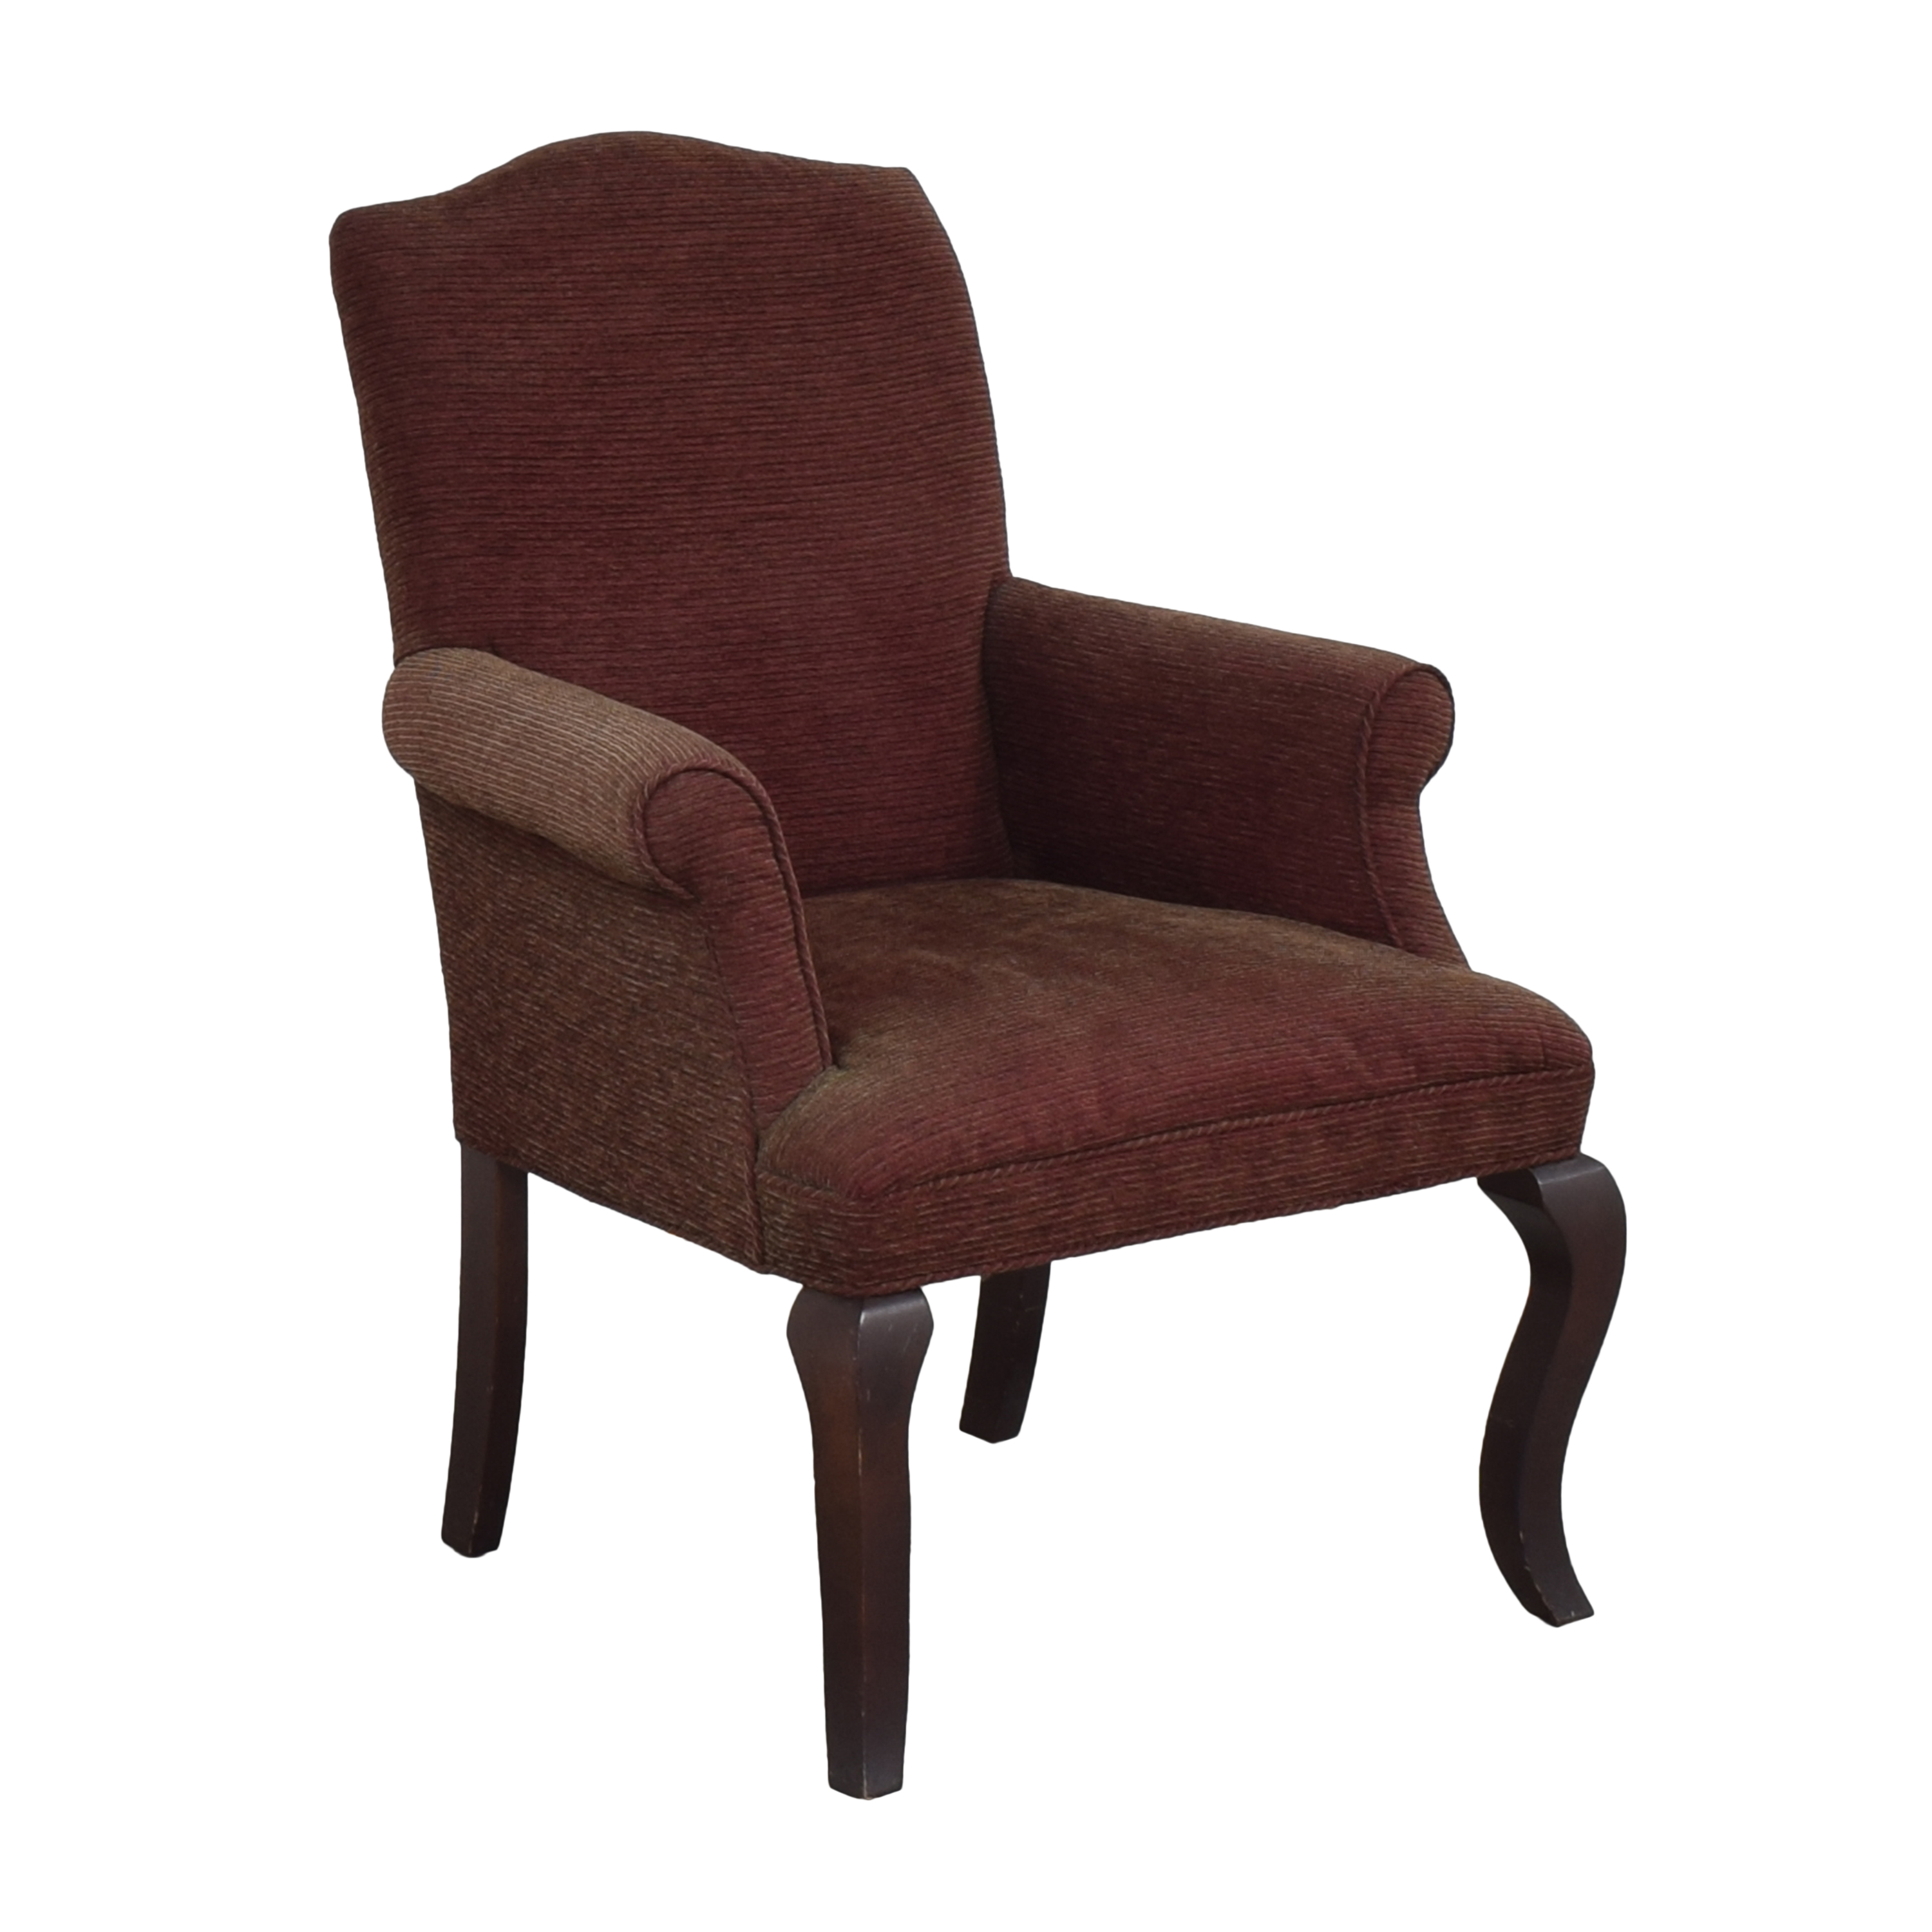 Crate & Barrel Upholstered Arm Chair Crate & Barrel